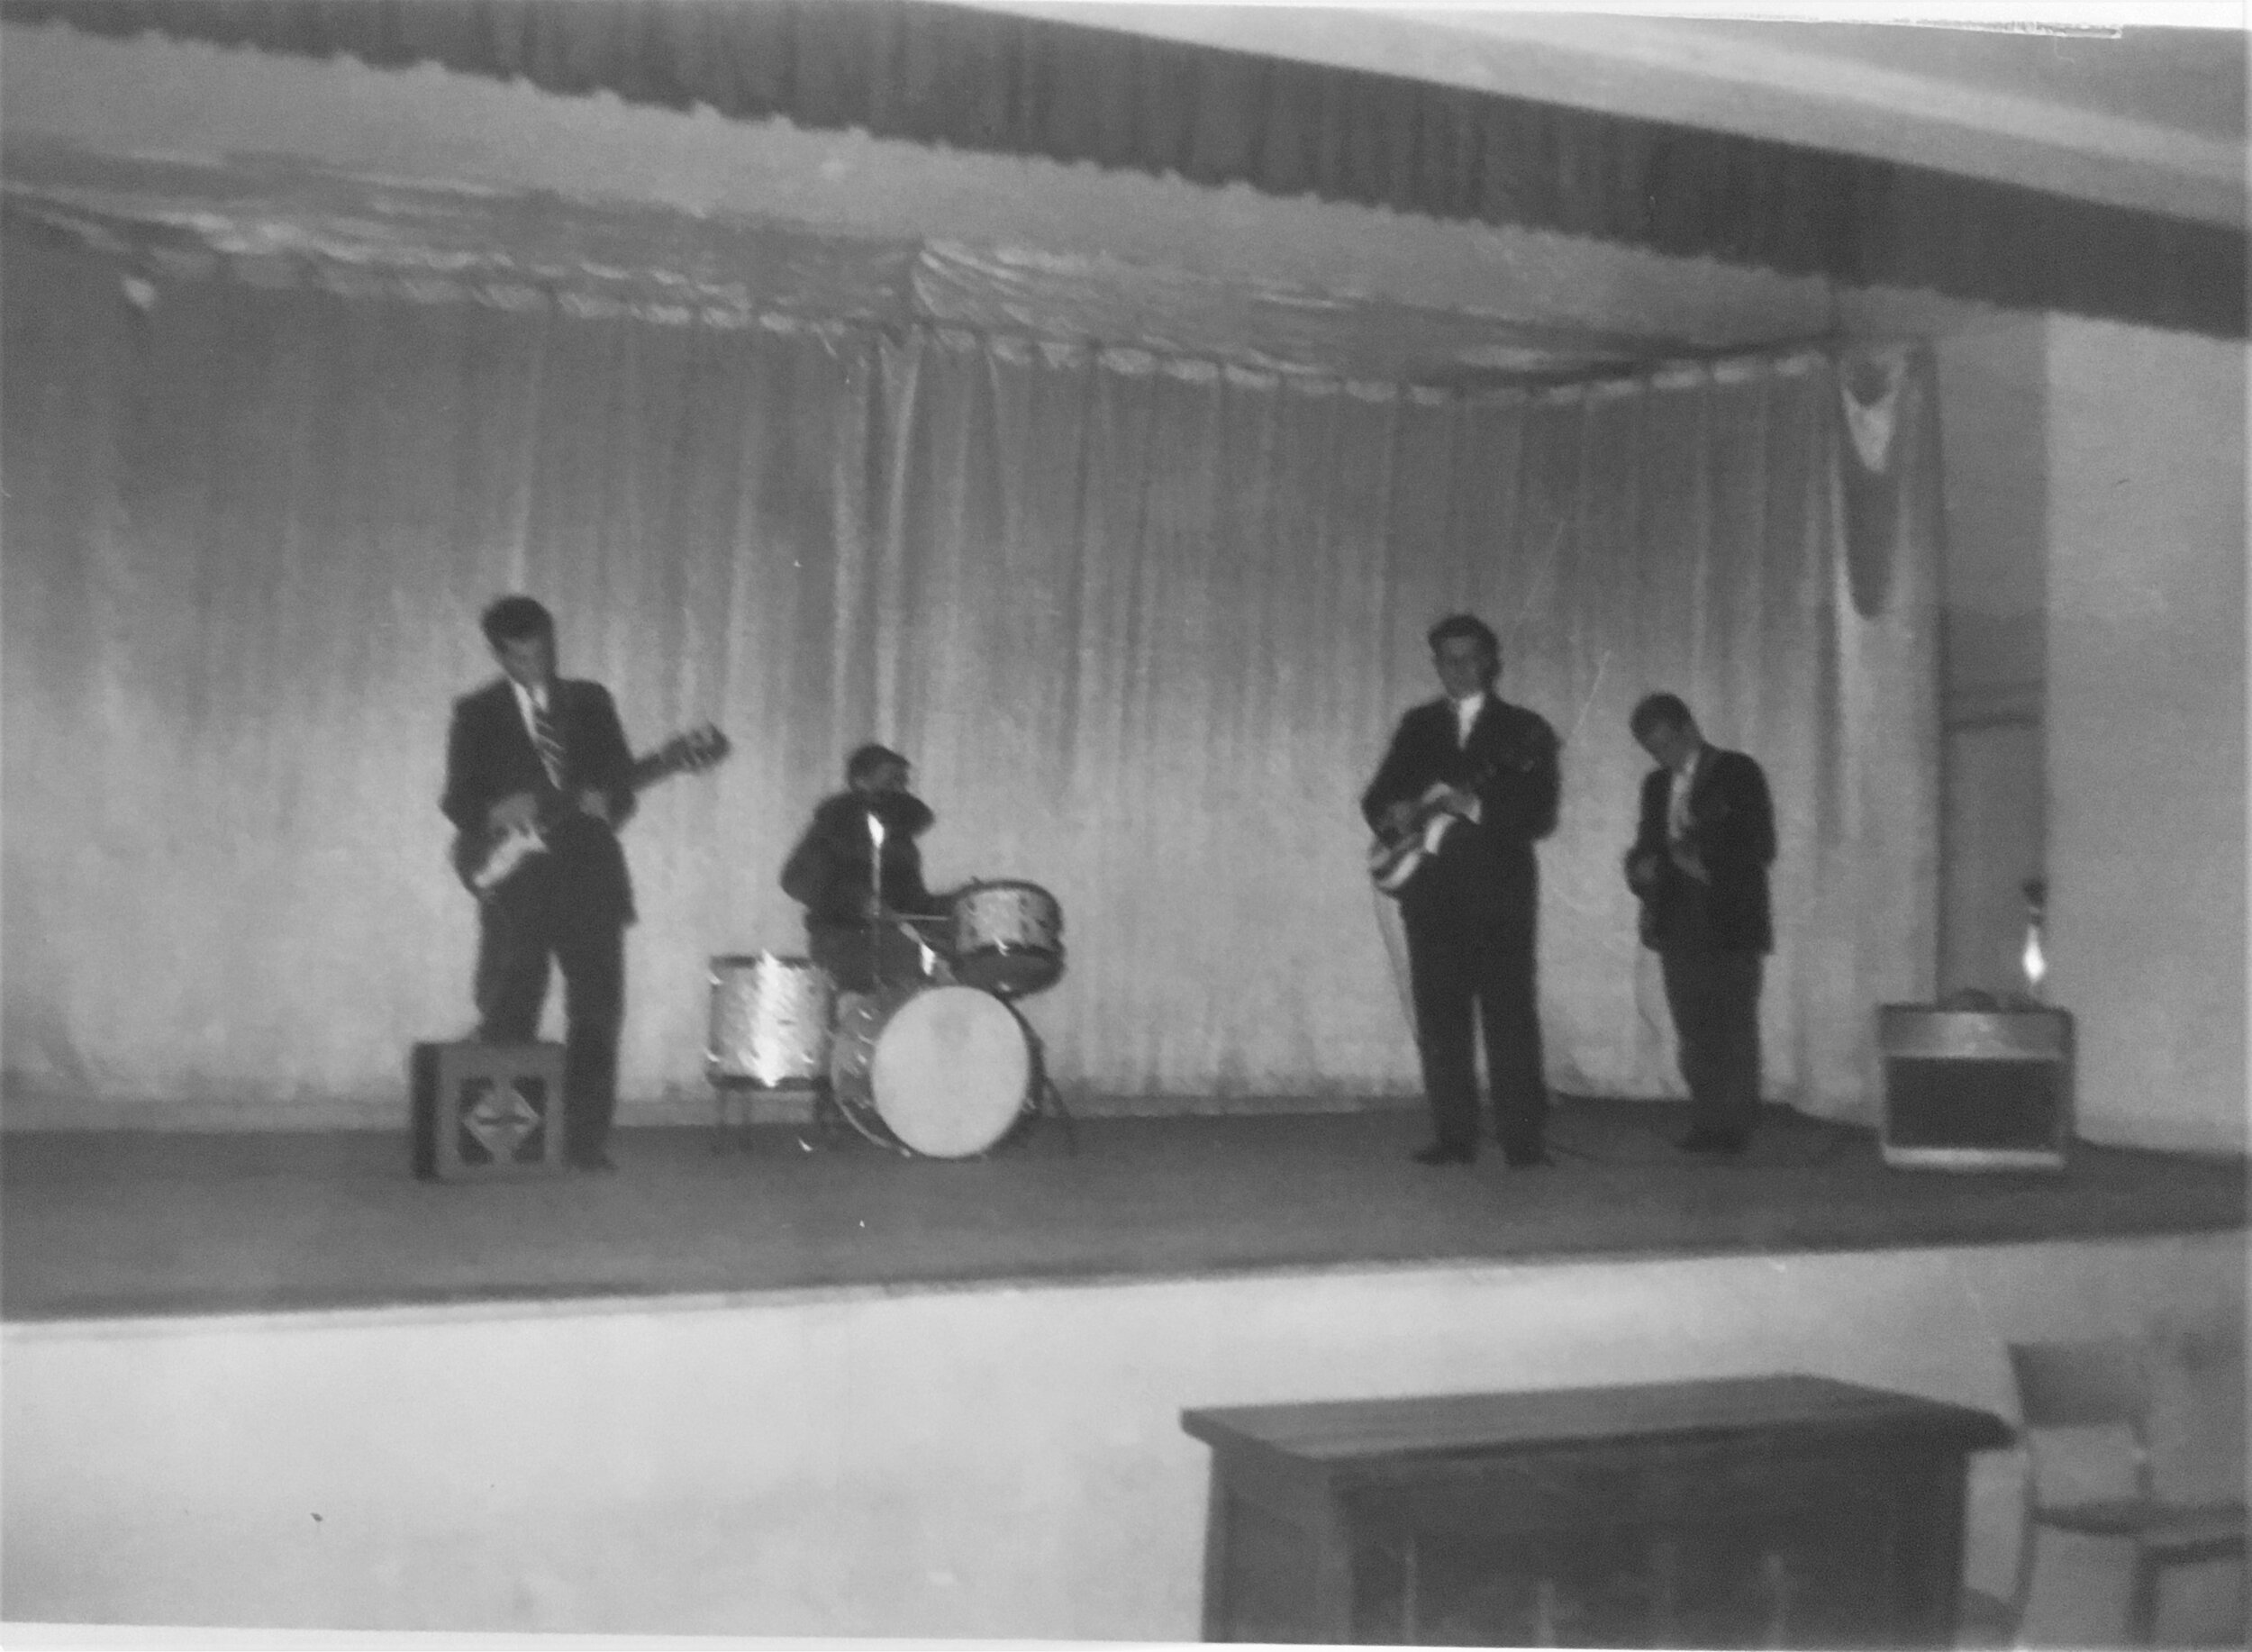 The caption says Gerry Mercer's Band. We presume that's Gerry on drums. This was taken in April 1960, the month Gerry turned 21.